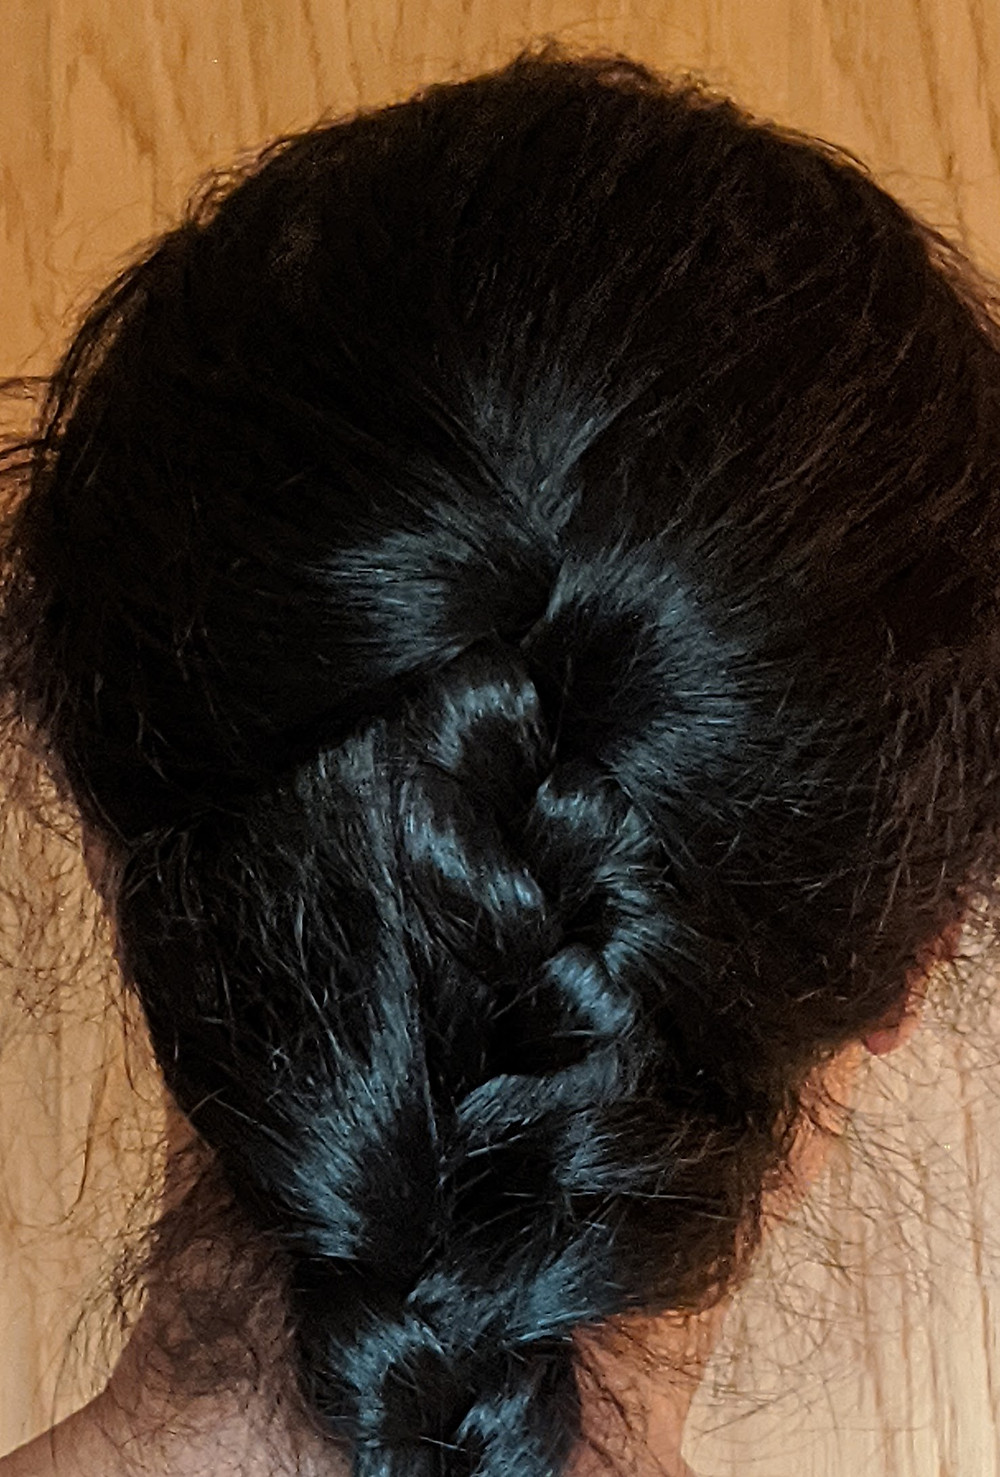 photo of the back of the head with black braid/plat